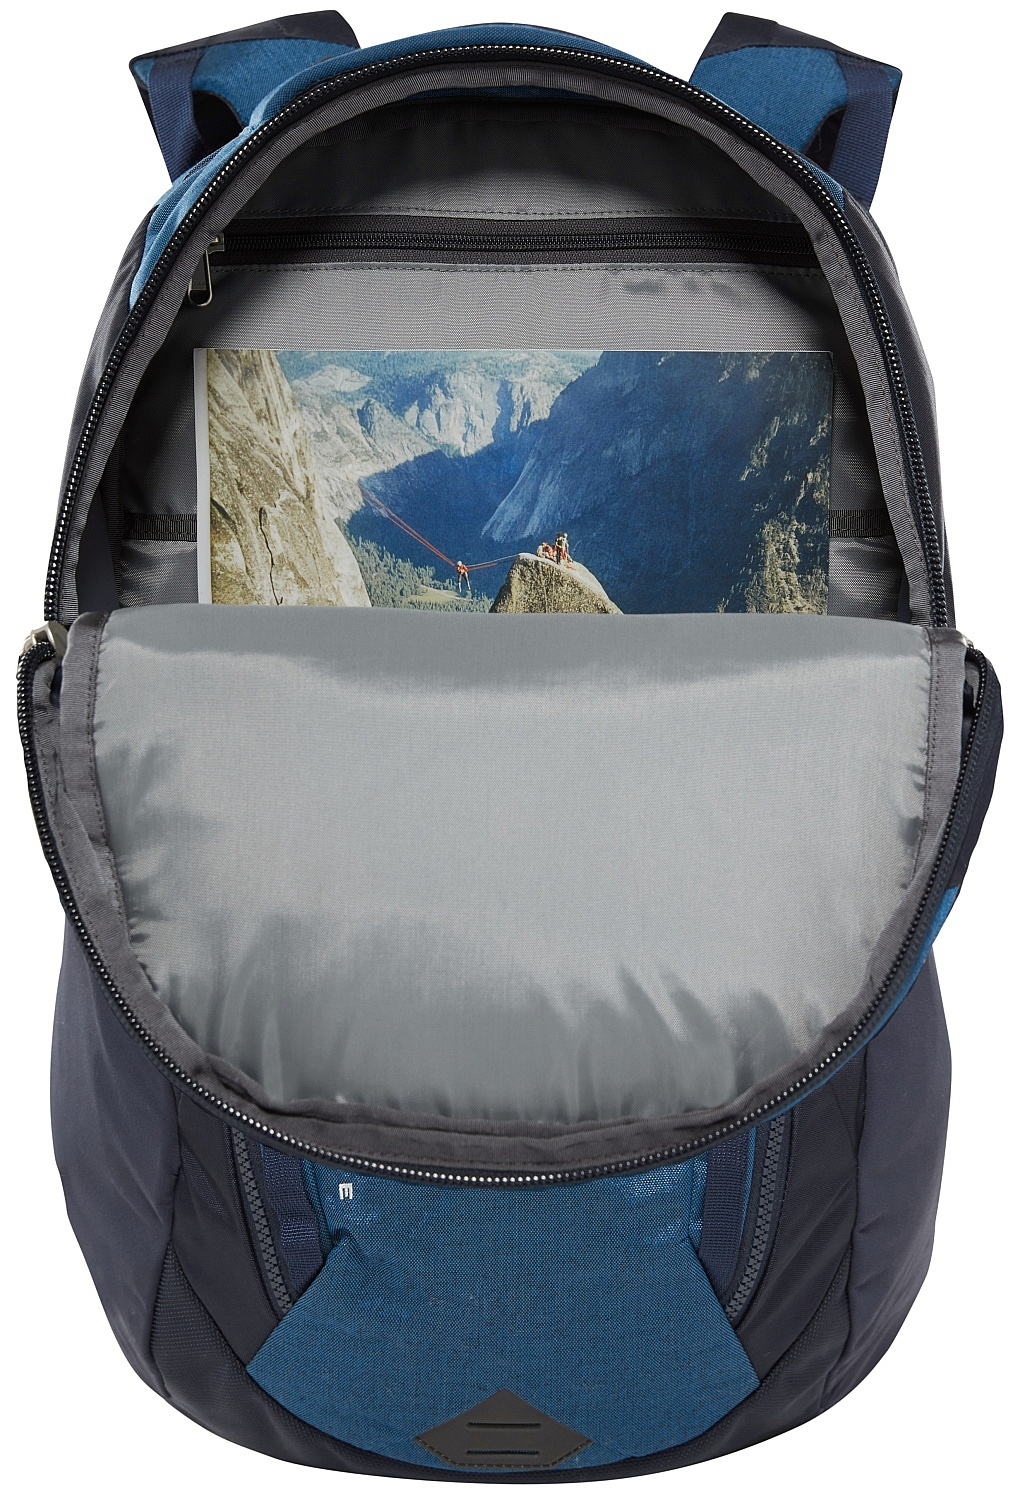 b296cc819088 ... backpack The North Face Surge 31 - Dish Blue Light Heather Urban Navy  ...